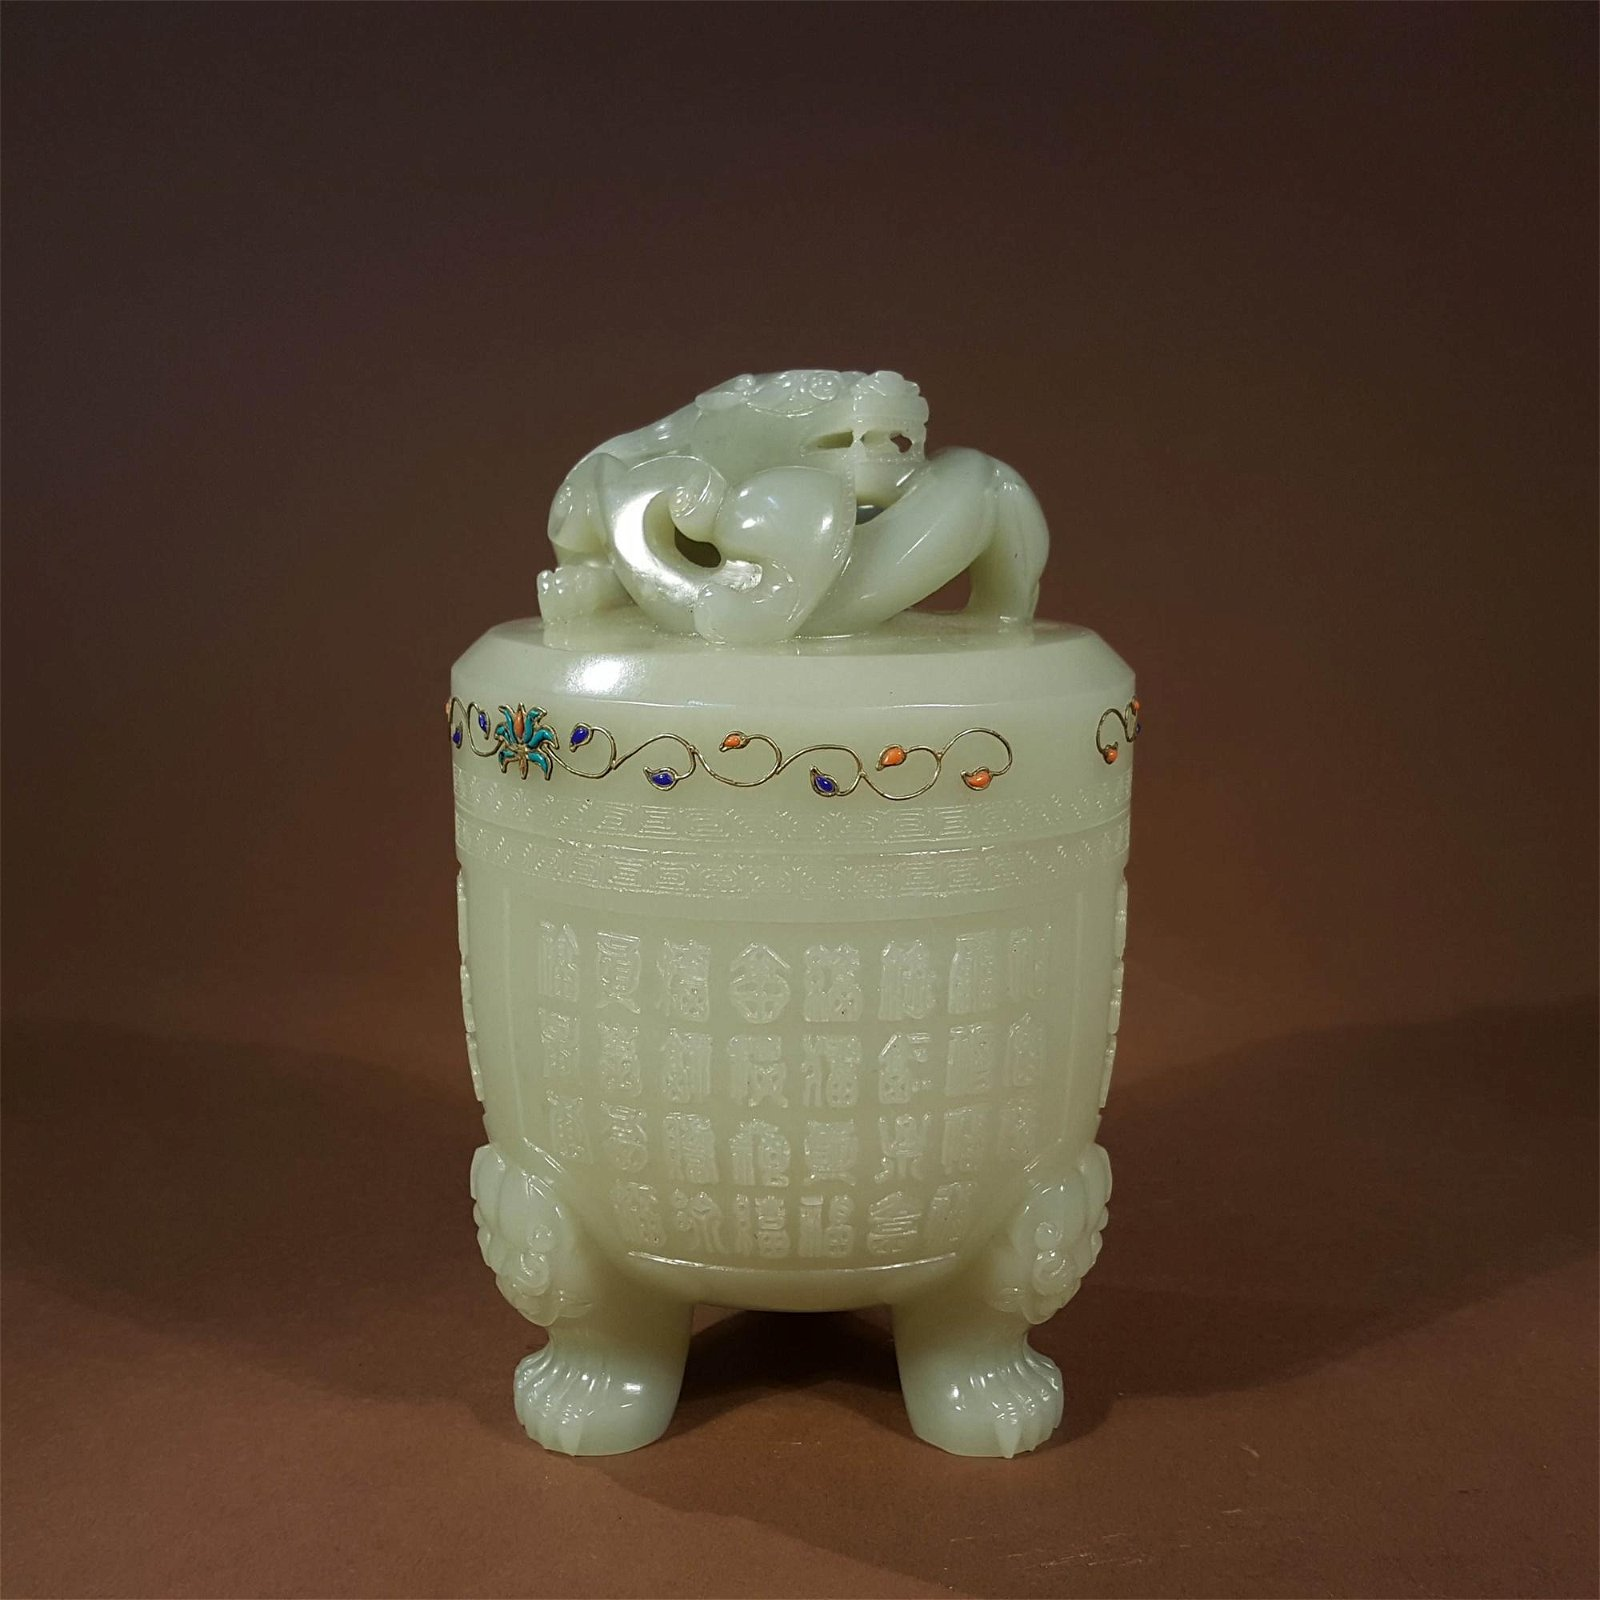 A QING DYNASTY CARVED WHITE JADE DRAGON PATTERN INCENSE